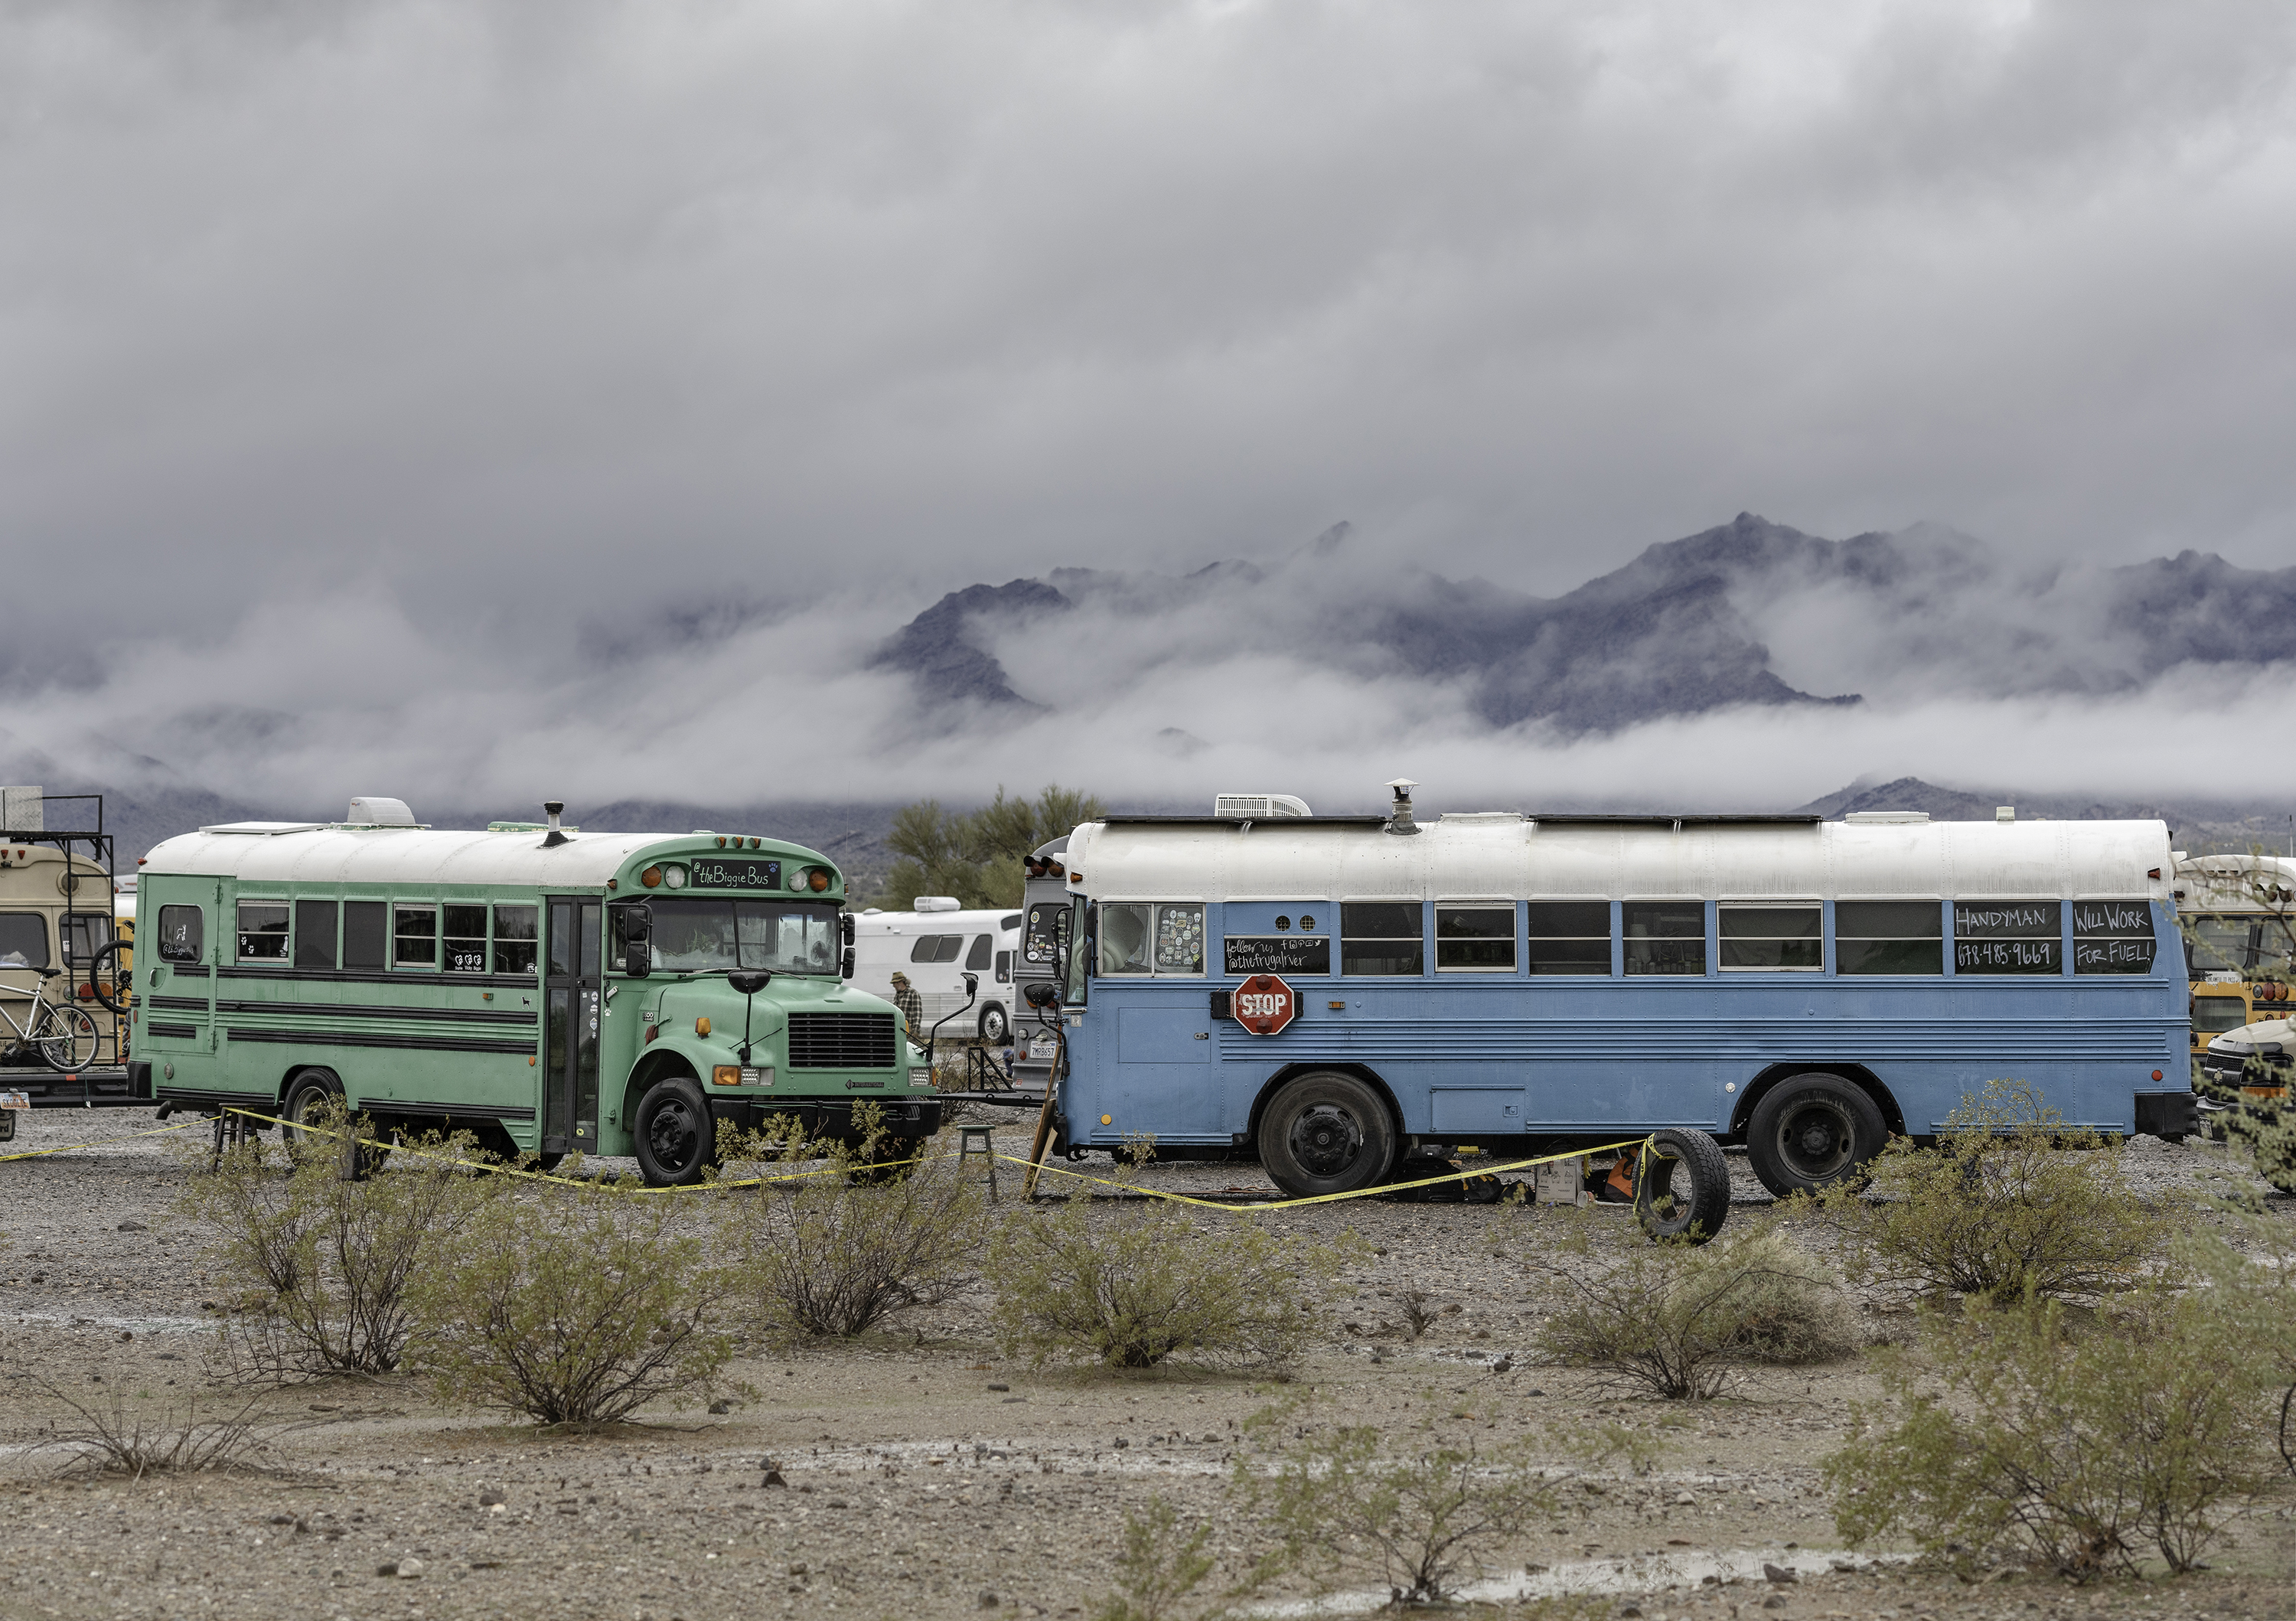 b9c30d2941 School bus conversion  Stories from life on the road - Curbed